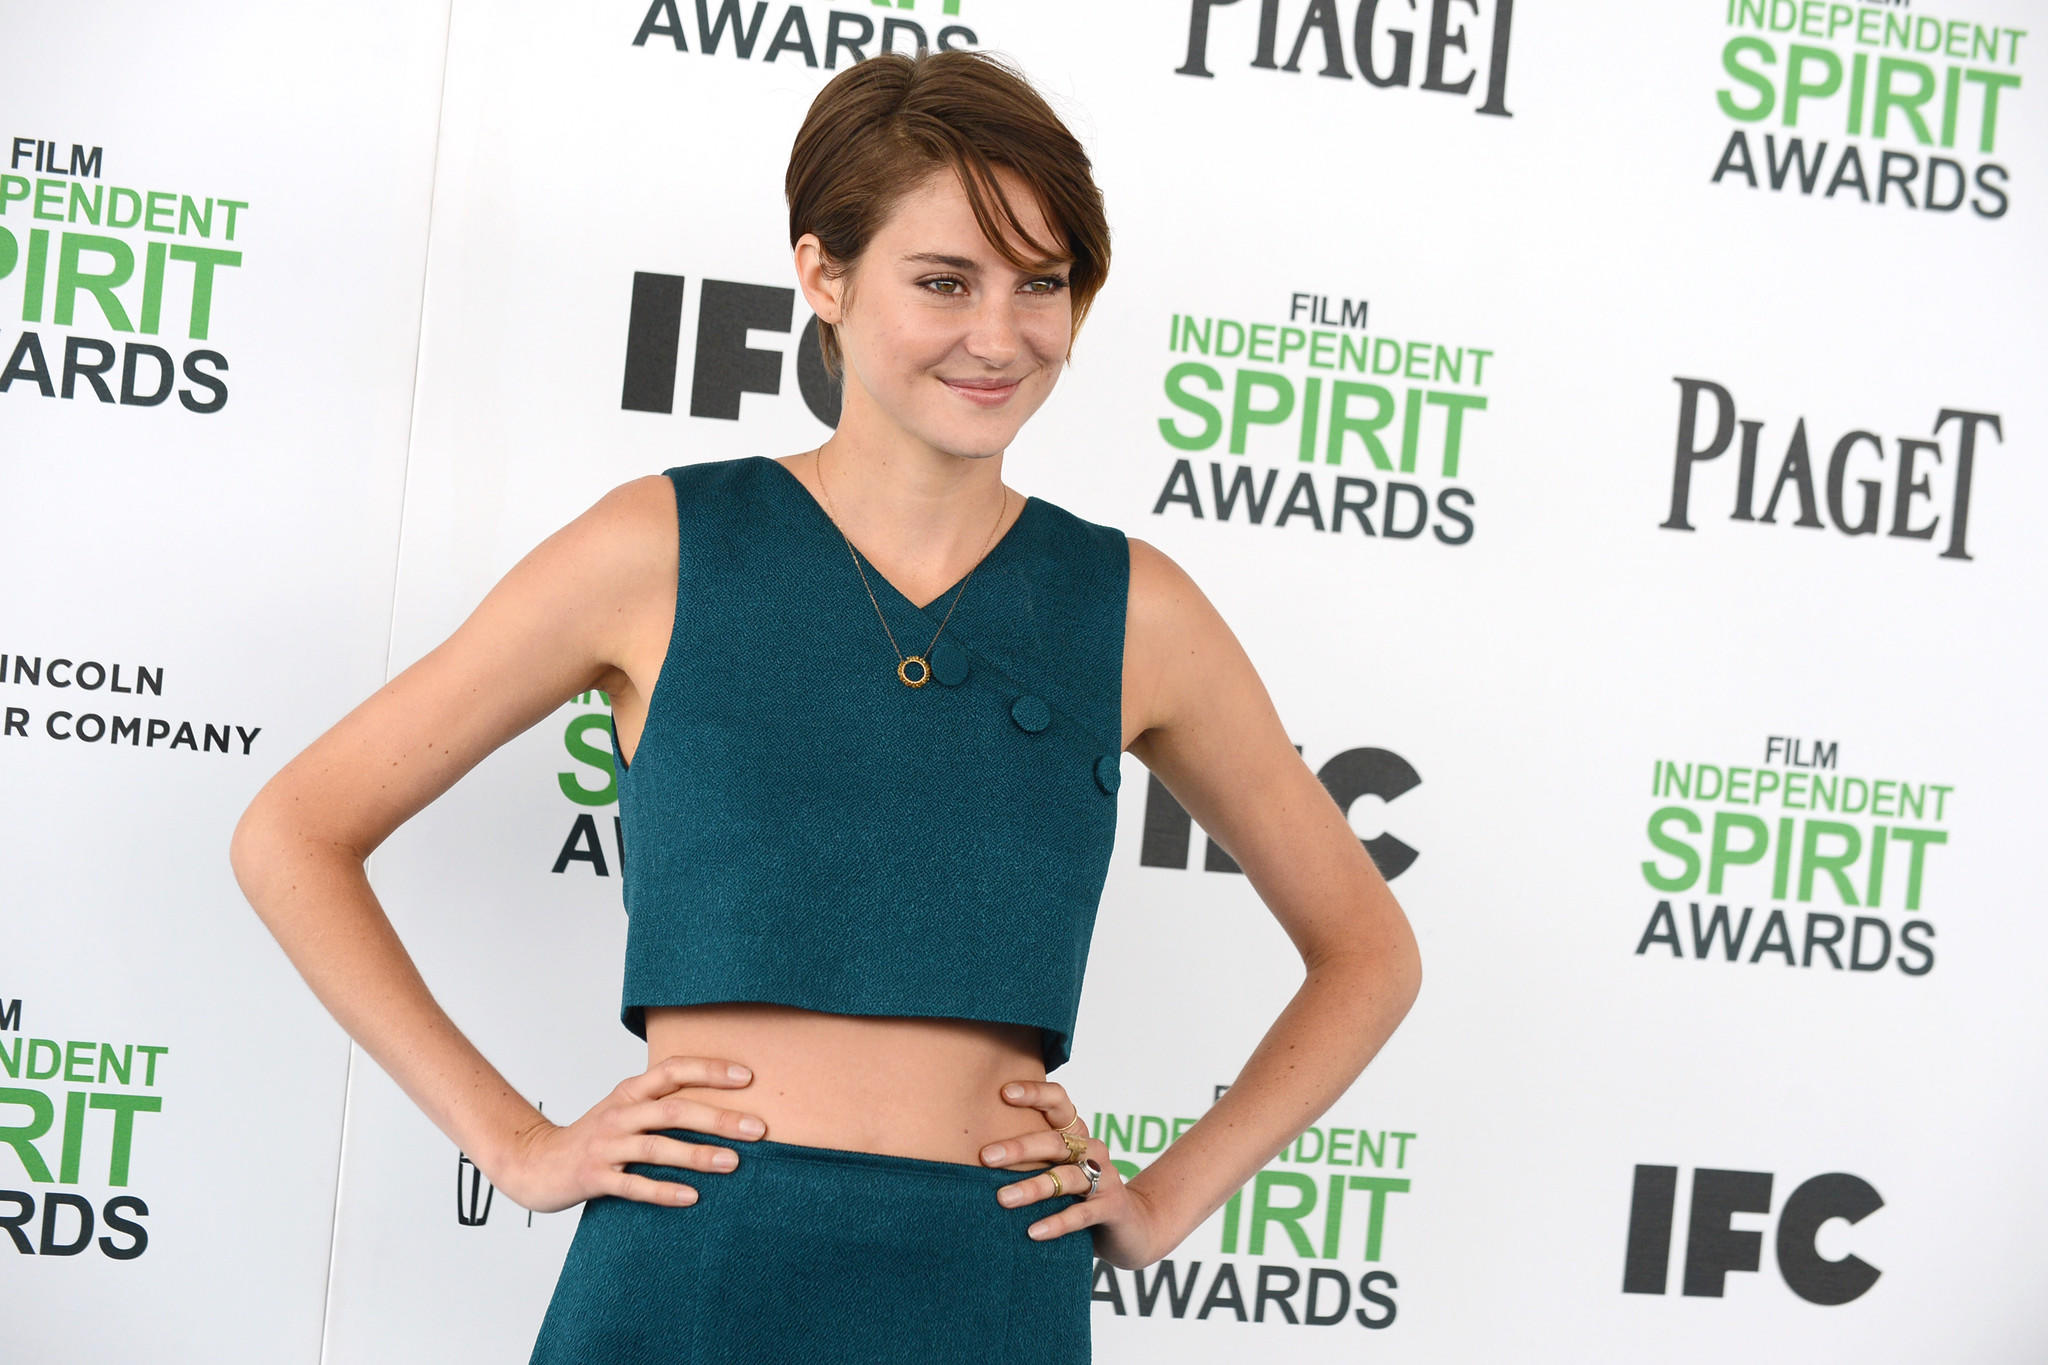 Shailene Woodley at the 2014 Film Independent Spirit Awards this month in Santa Monica.